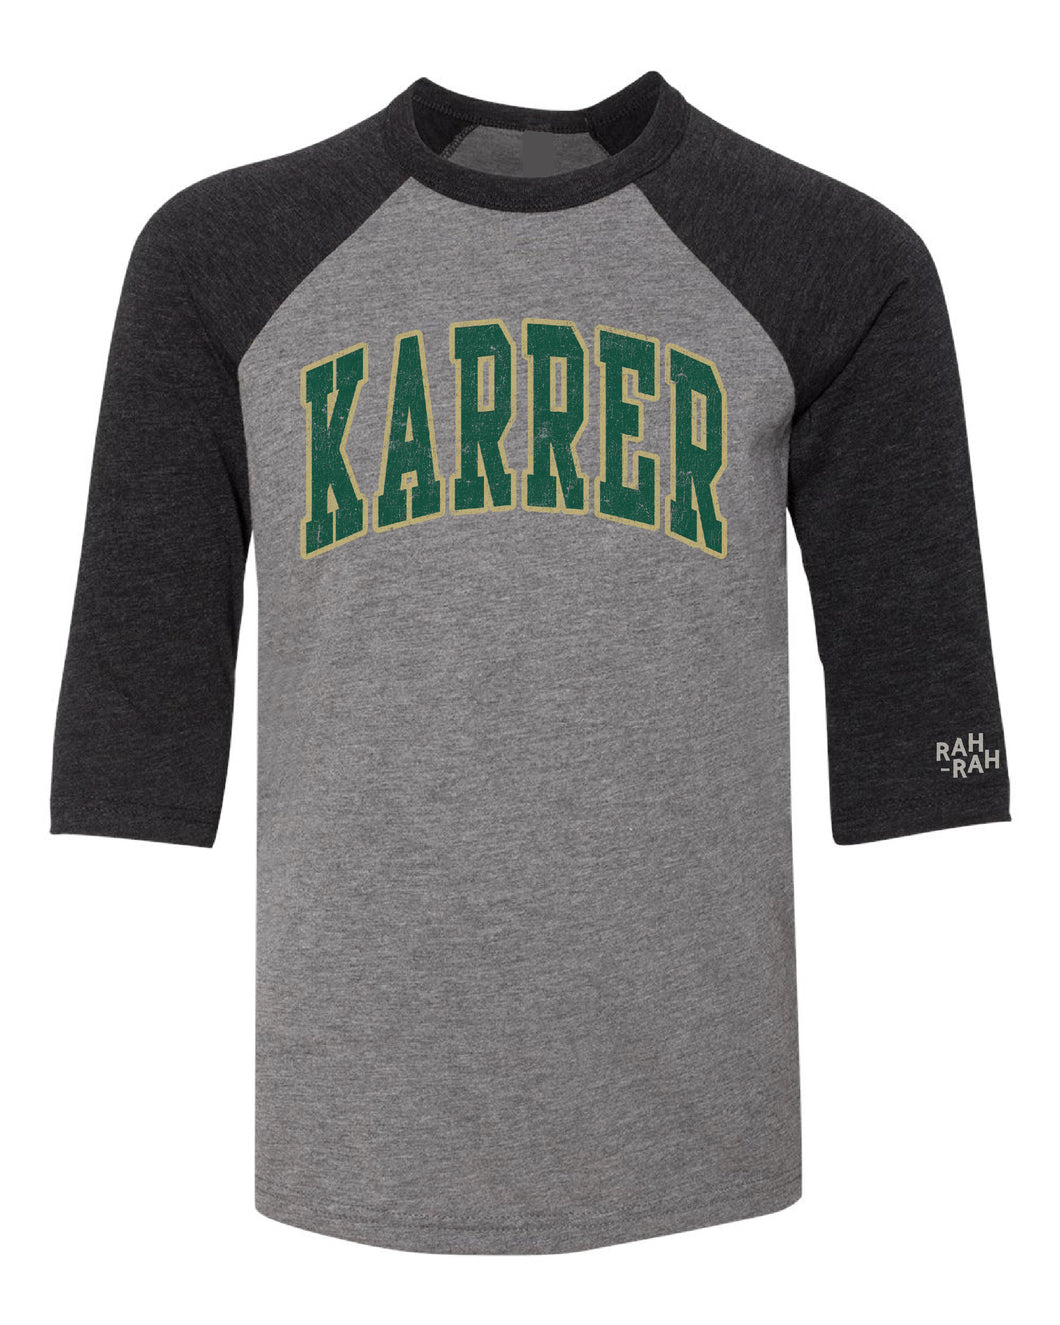 Karrer Block Youth Raglan